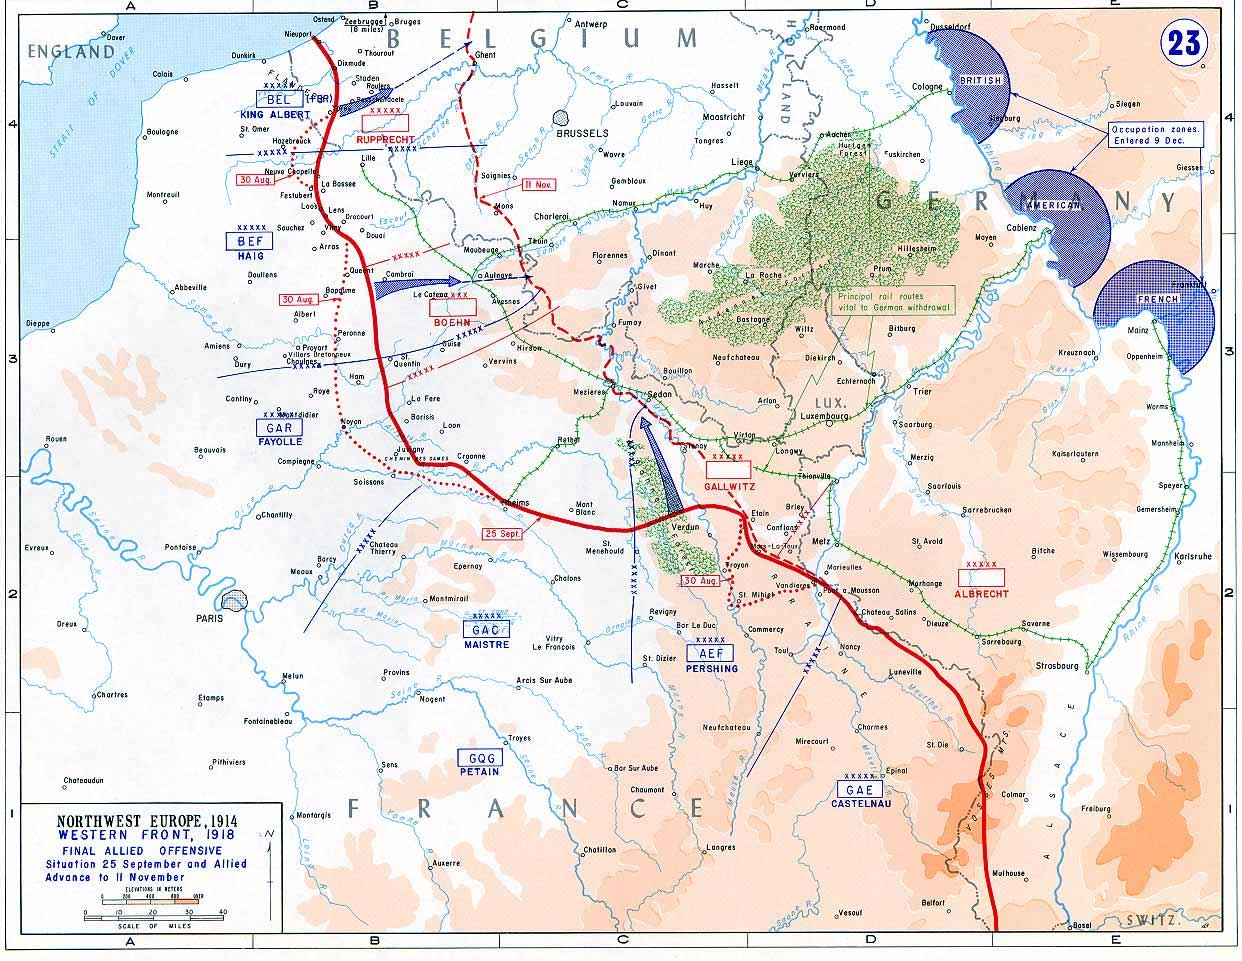 Western front 1918 - Final allied offensive